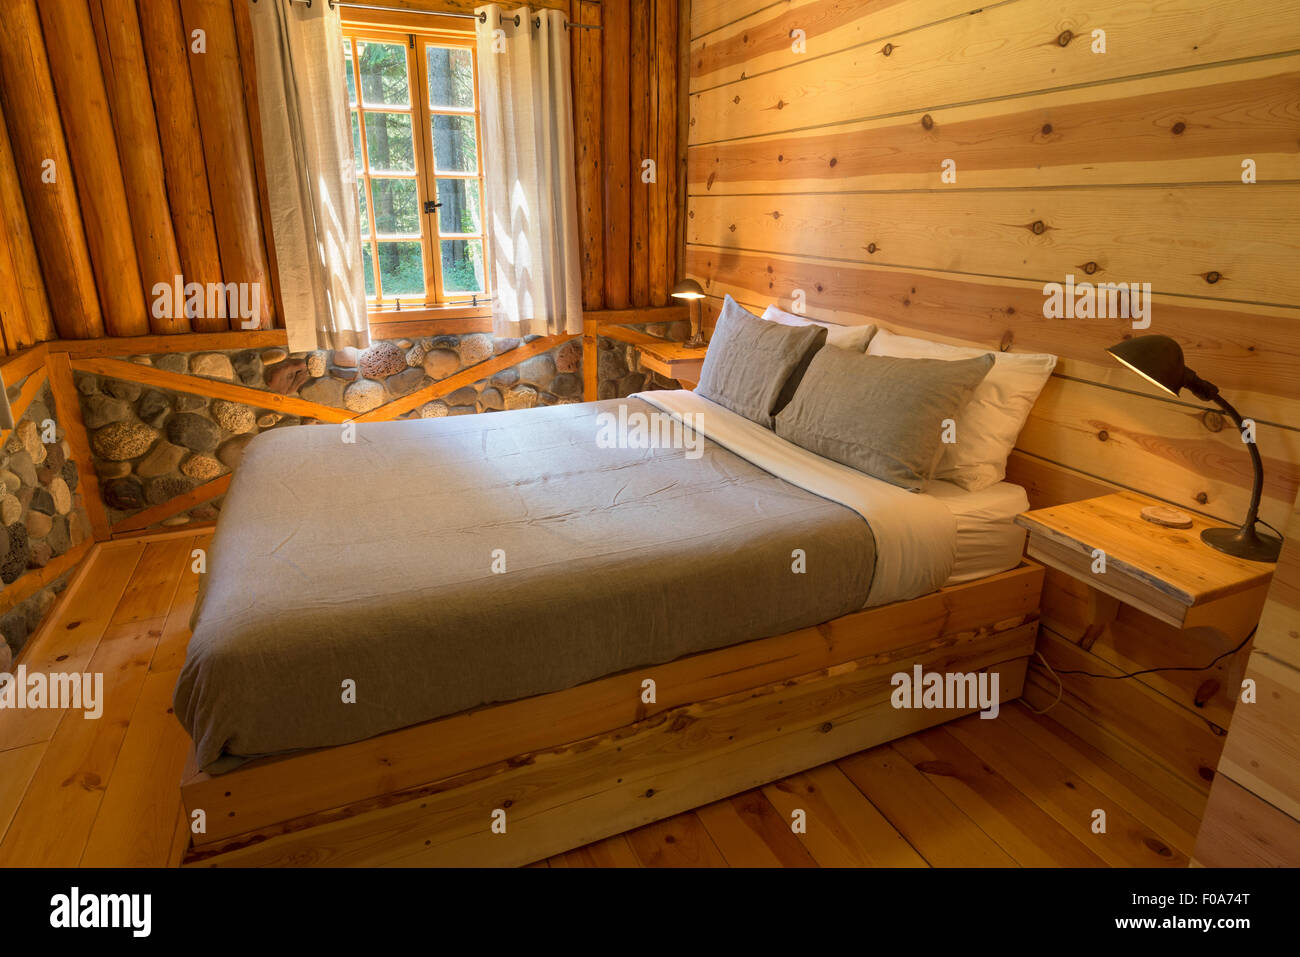 Bedroom of a log cabin at Minam River Lodge in Oregon's Wallowa Mountains. - Stock Image